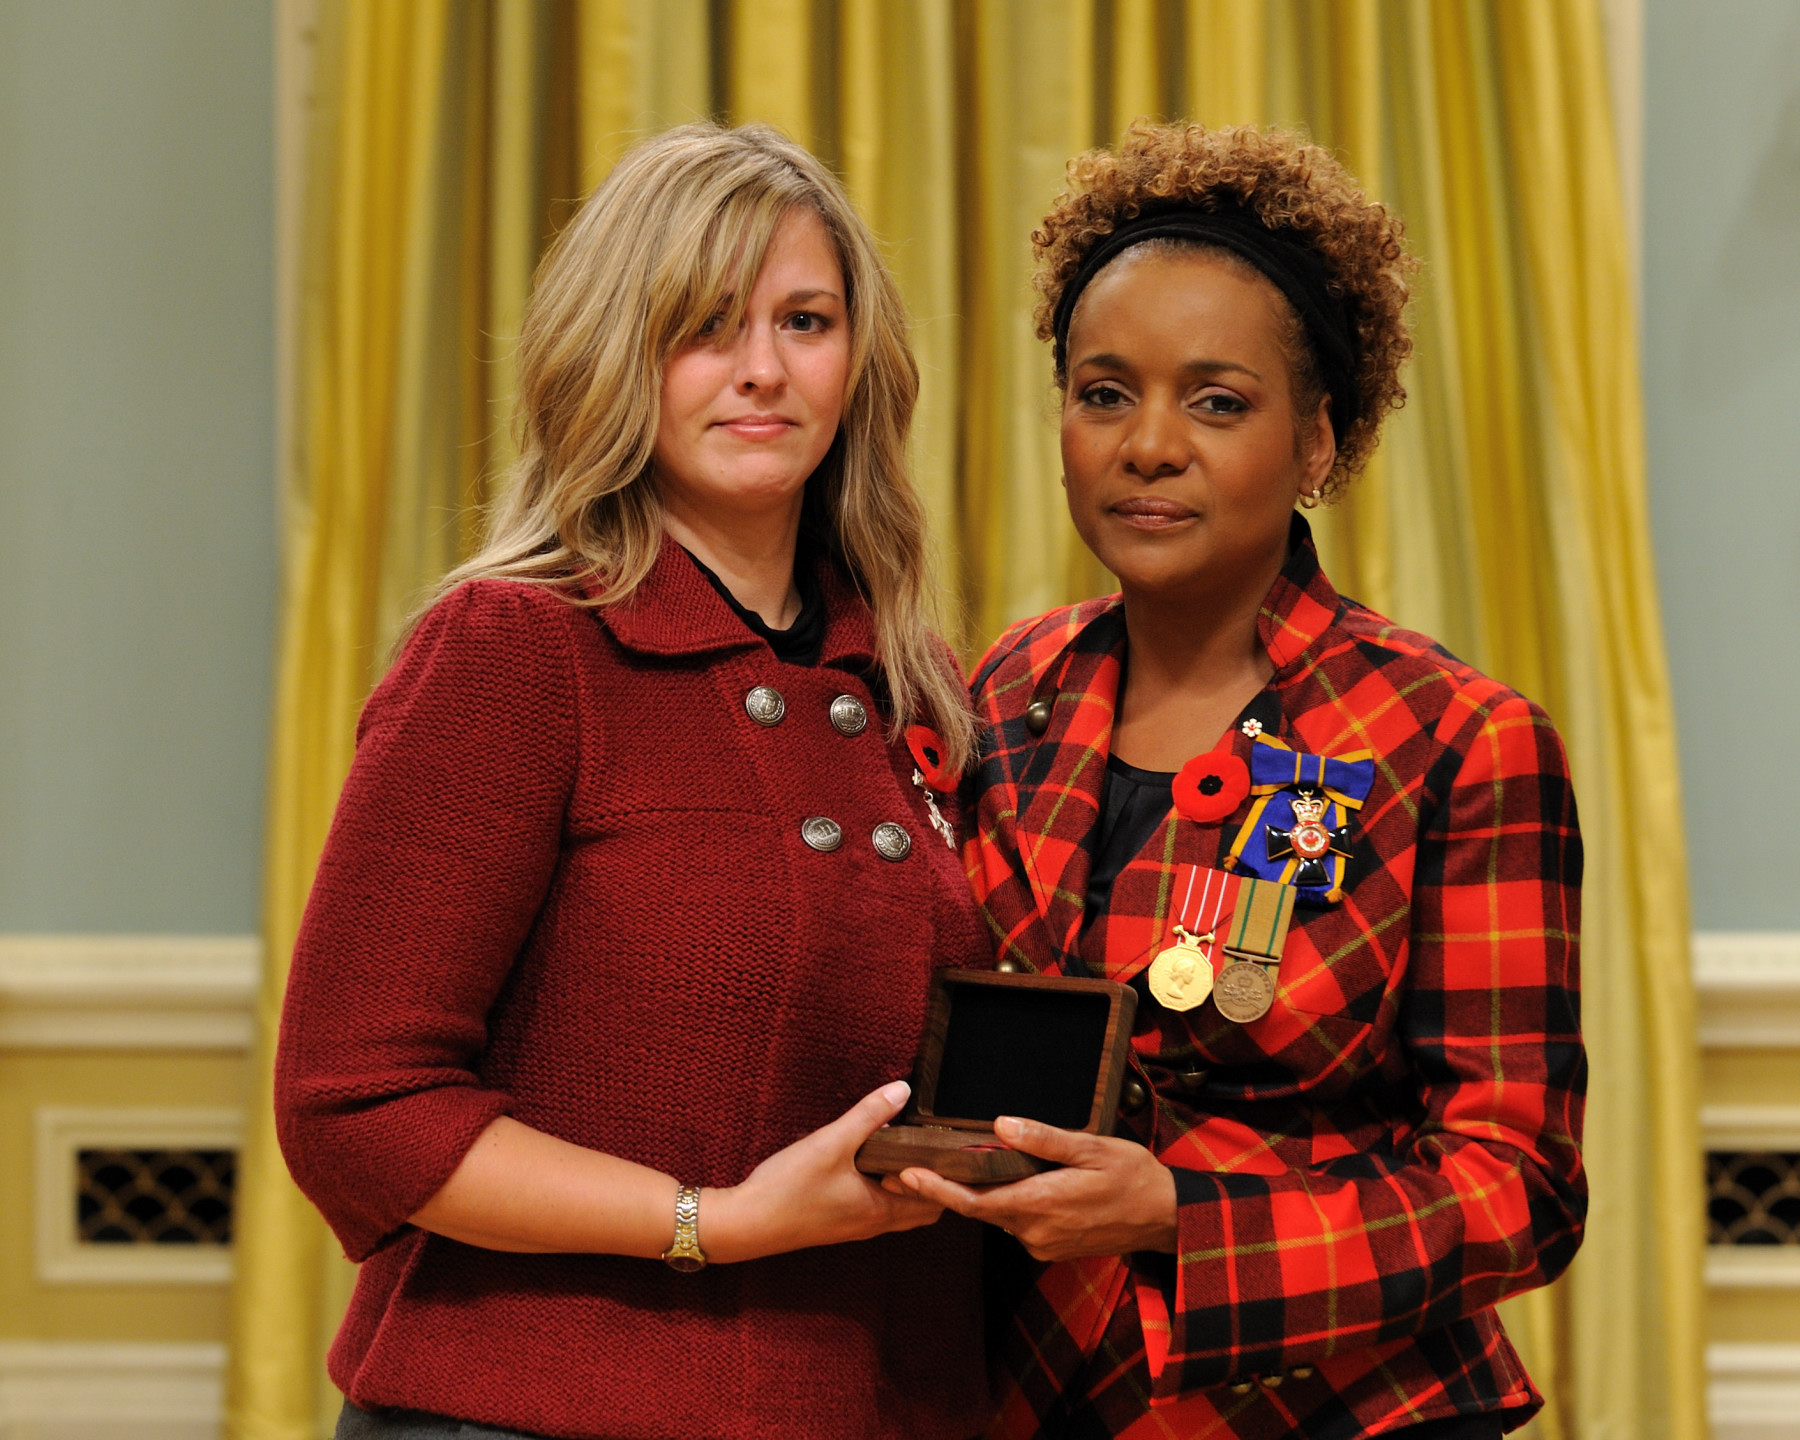 Her Excellency the Right Honourable Michaëlle Jean, Commander-in-Chief of Canada, presented the Sacrifice Medal to the wife of Master Corporal Darrell Jason Priede, who was honoured posthumously.